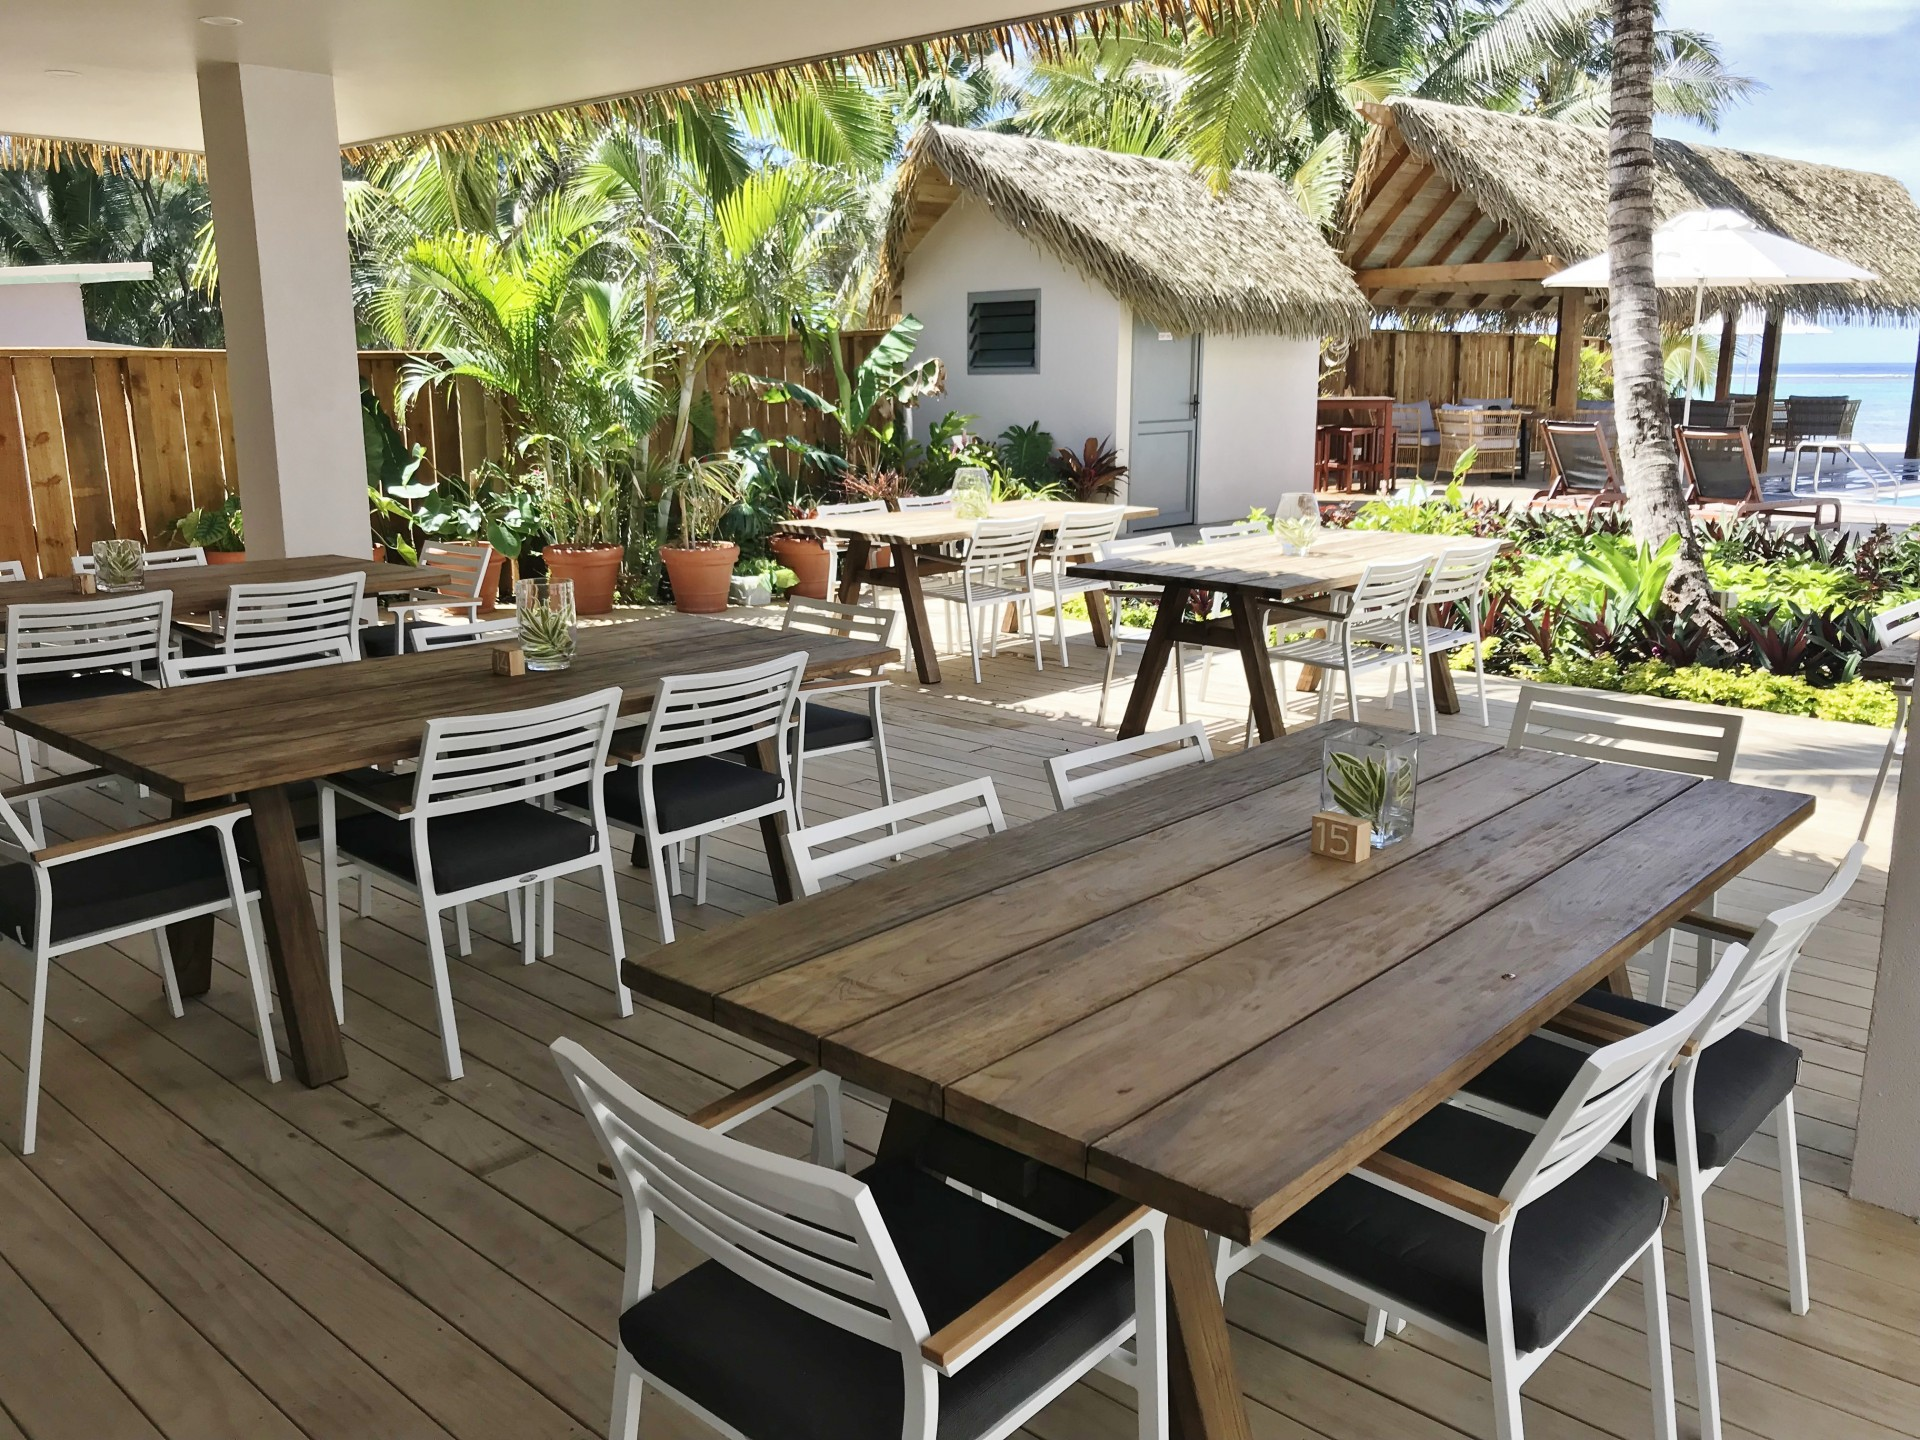 Moana Sands Lagoon Resort Outdoor Dining Furniture